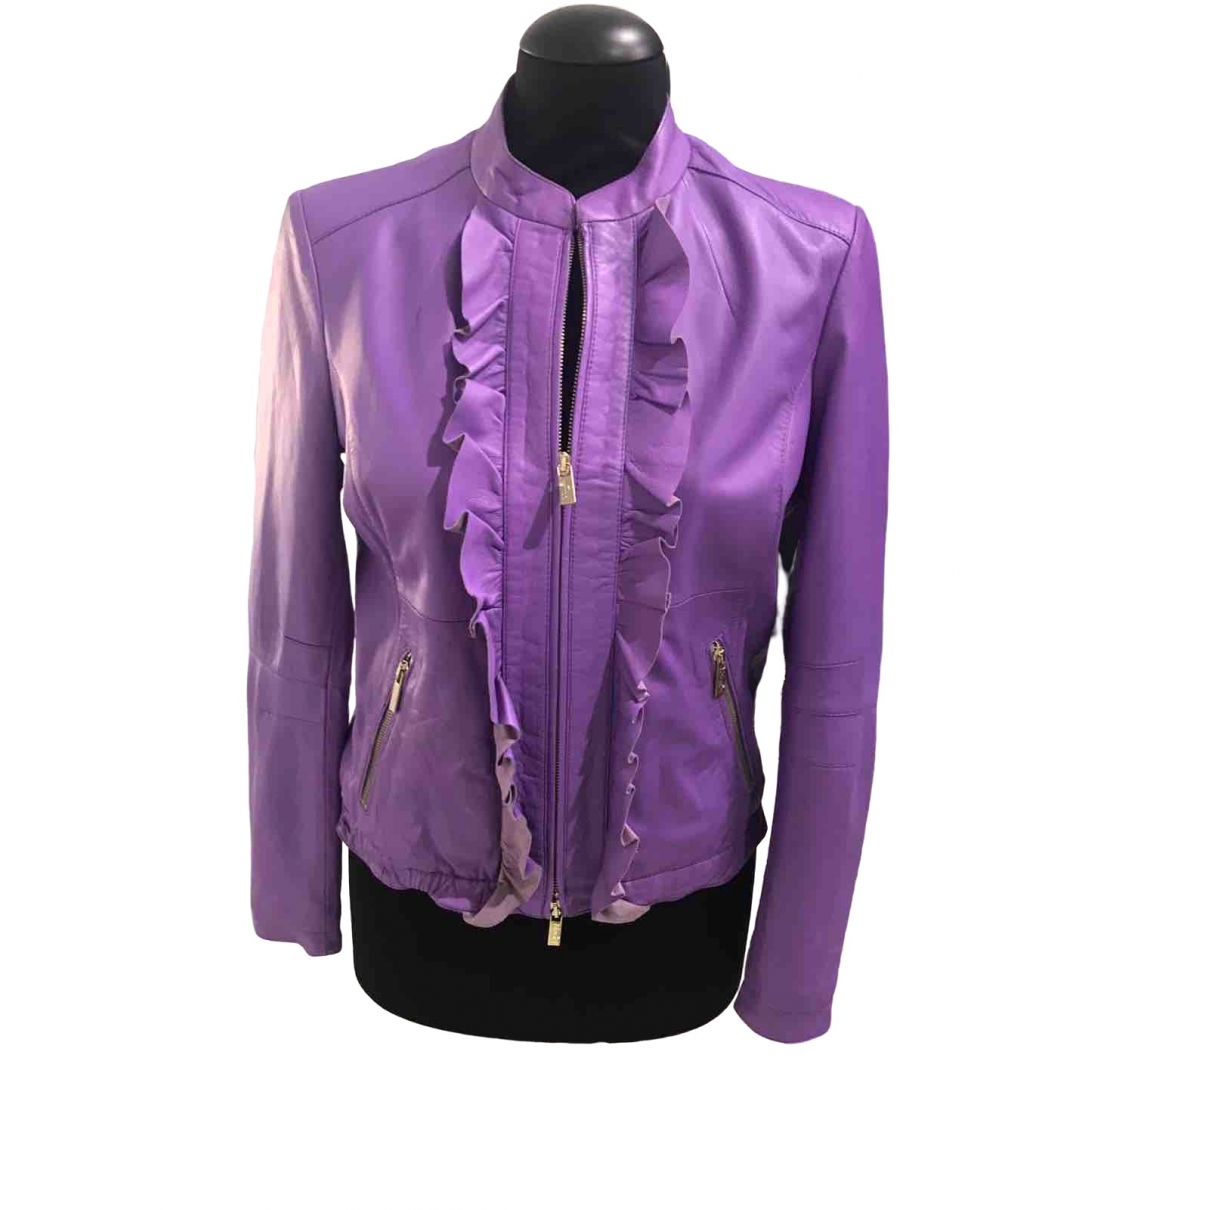 Blumarine \N Purple Leather jacket for Women 40 IT